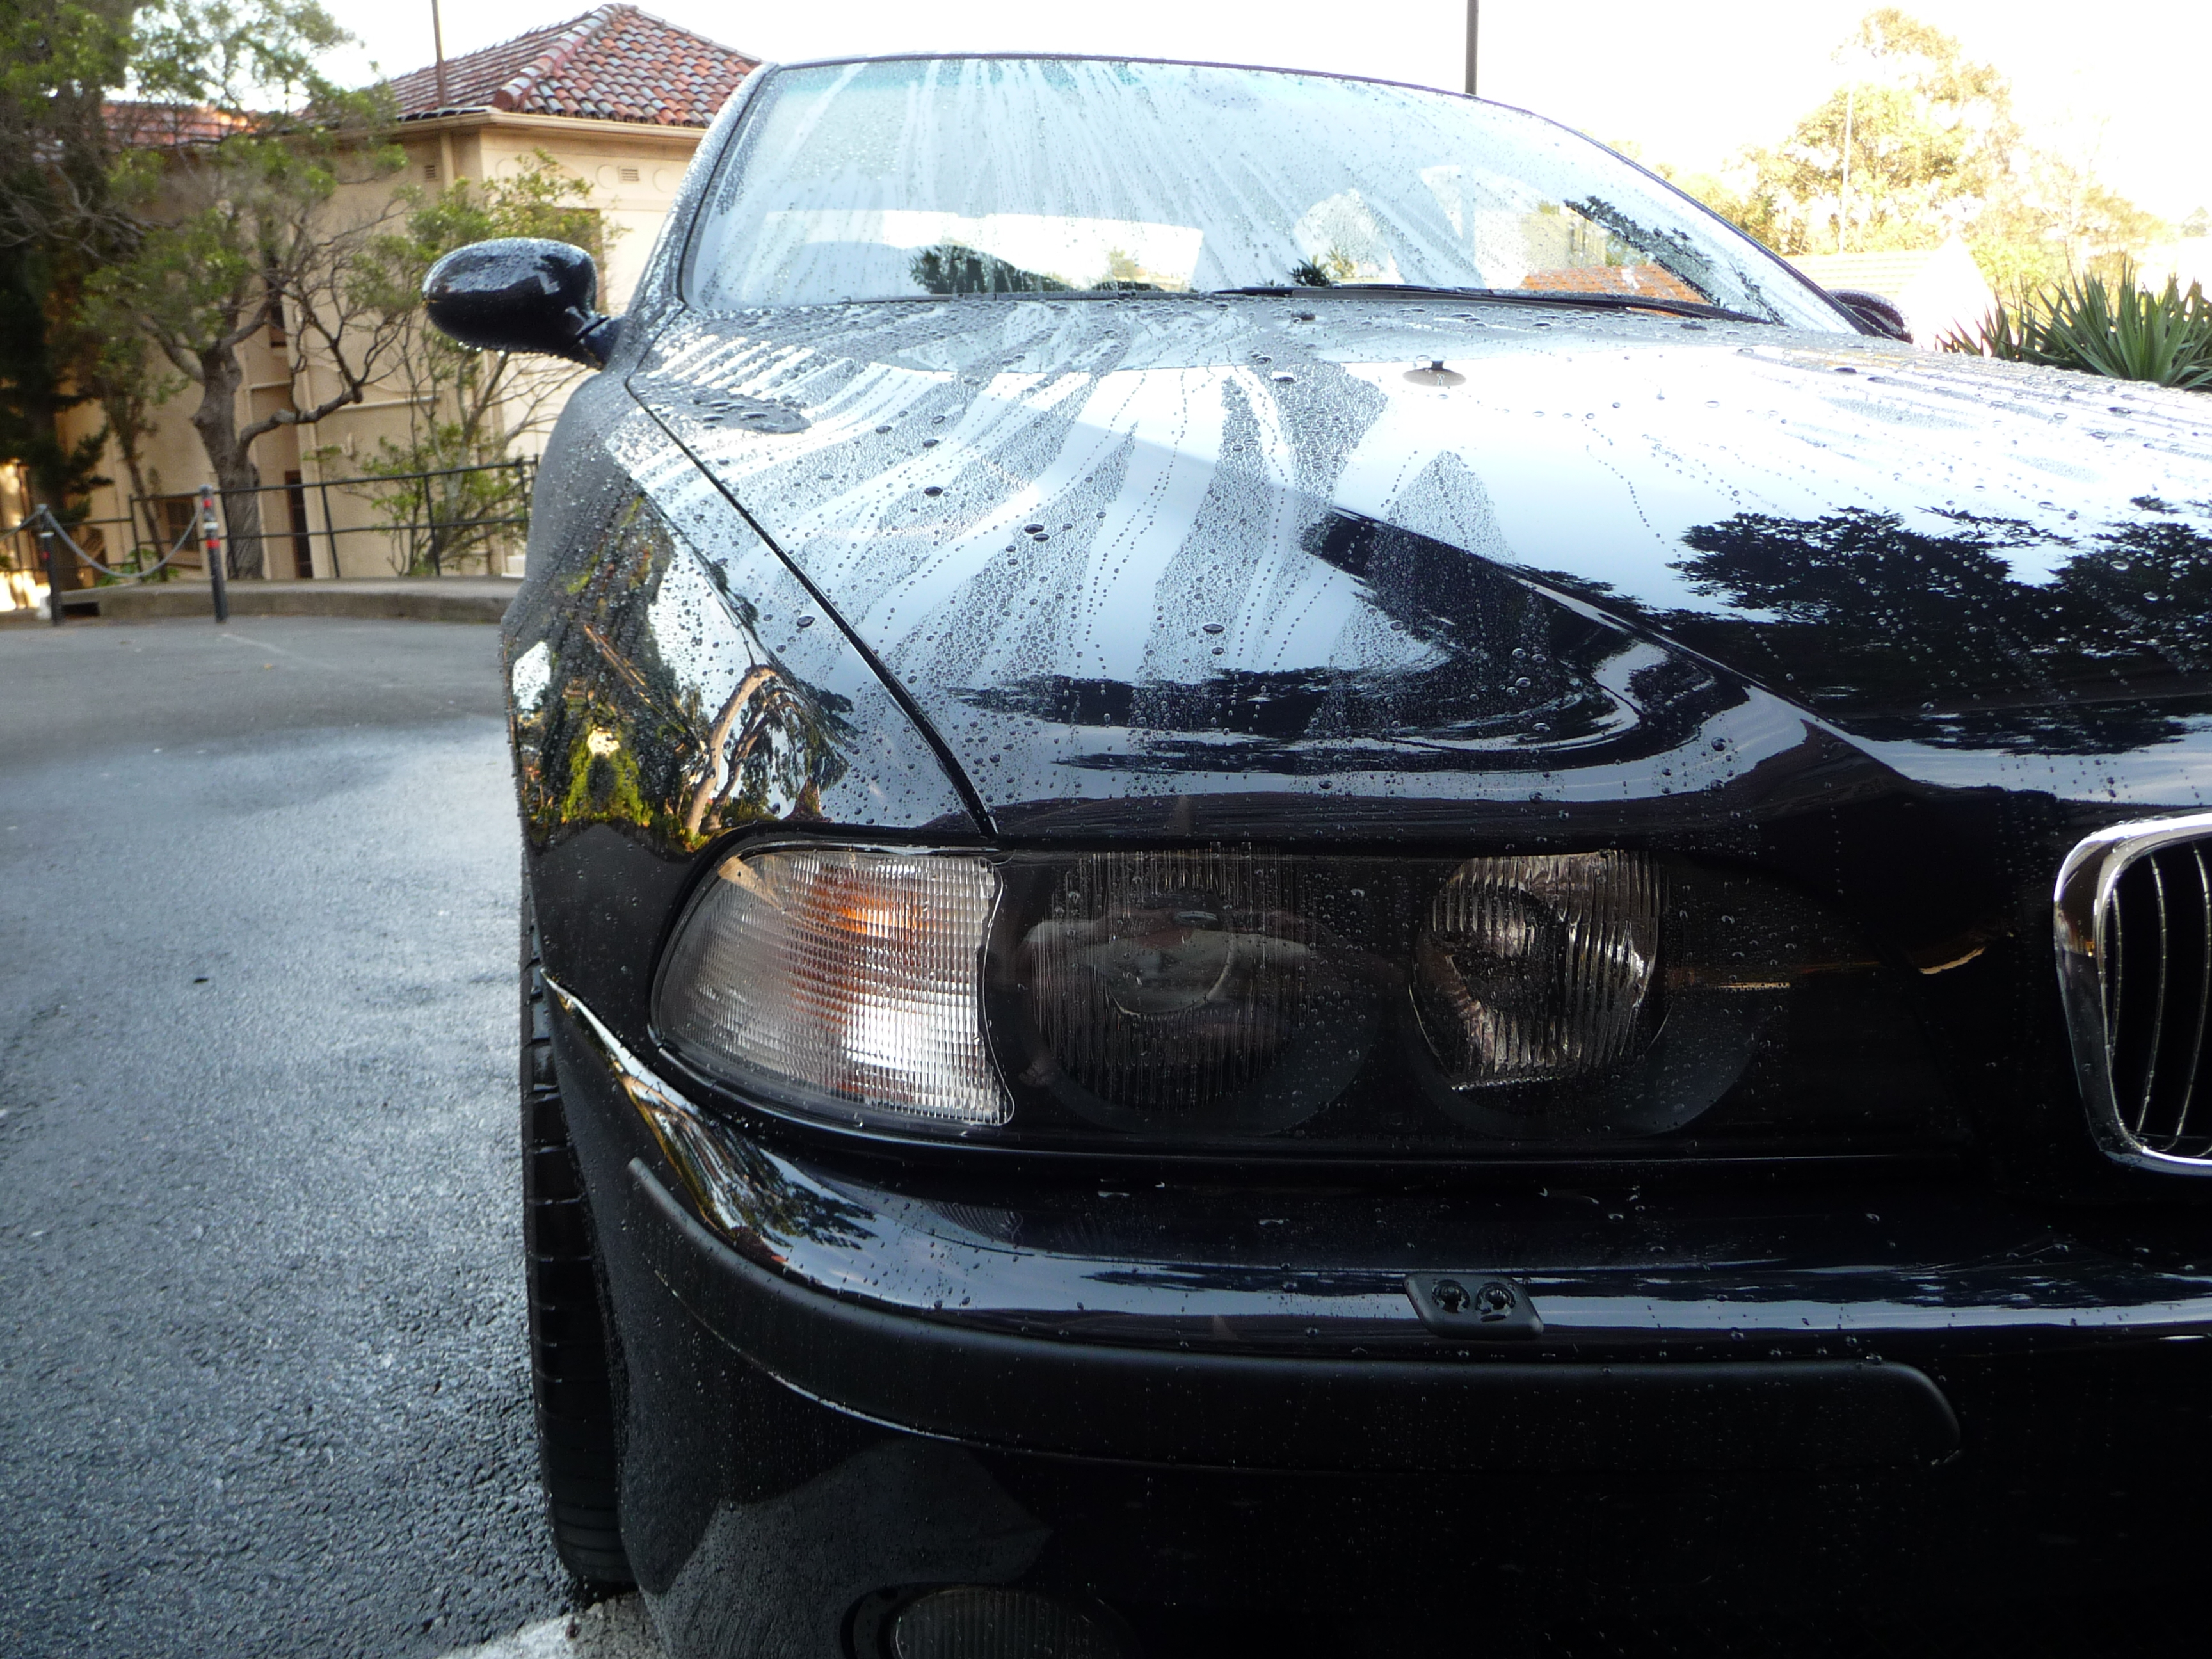 My Carbon Black bare metal respray - progress photos-m5-painted-014.jpg